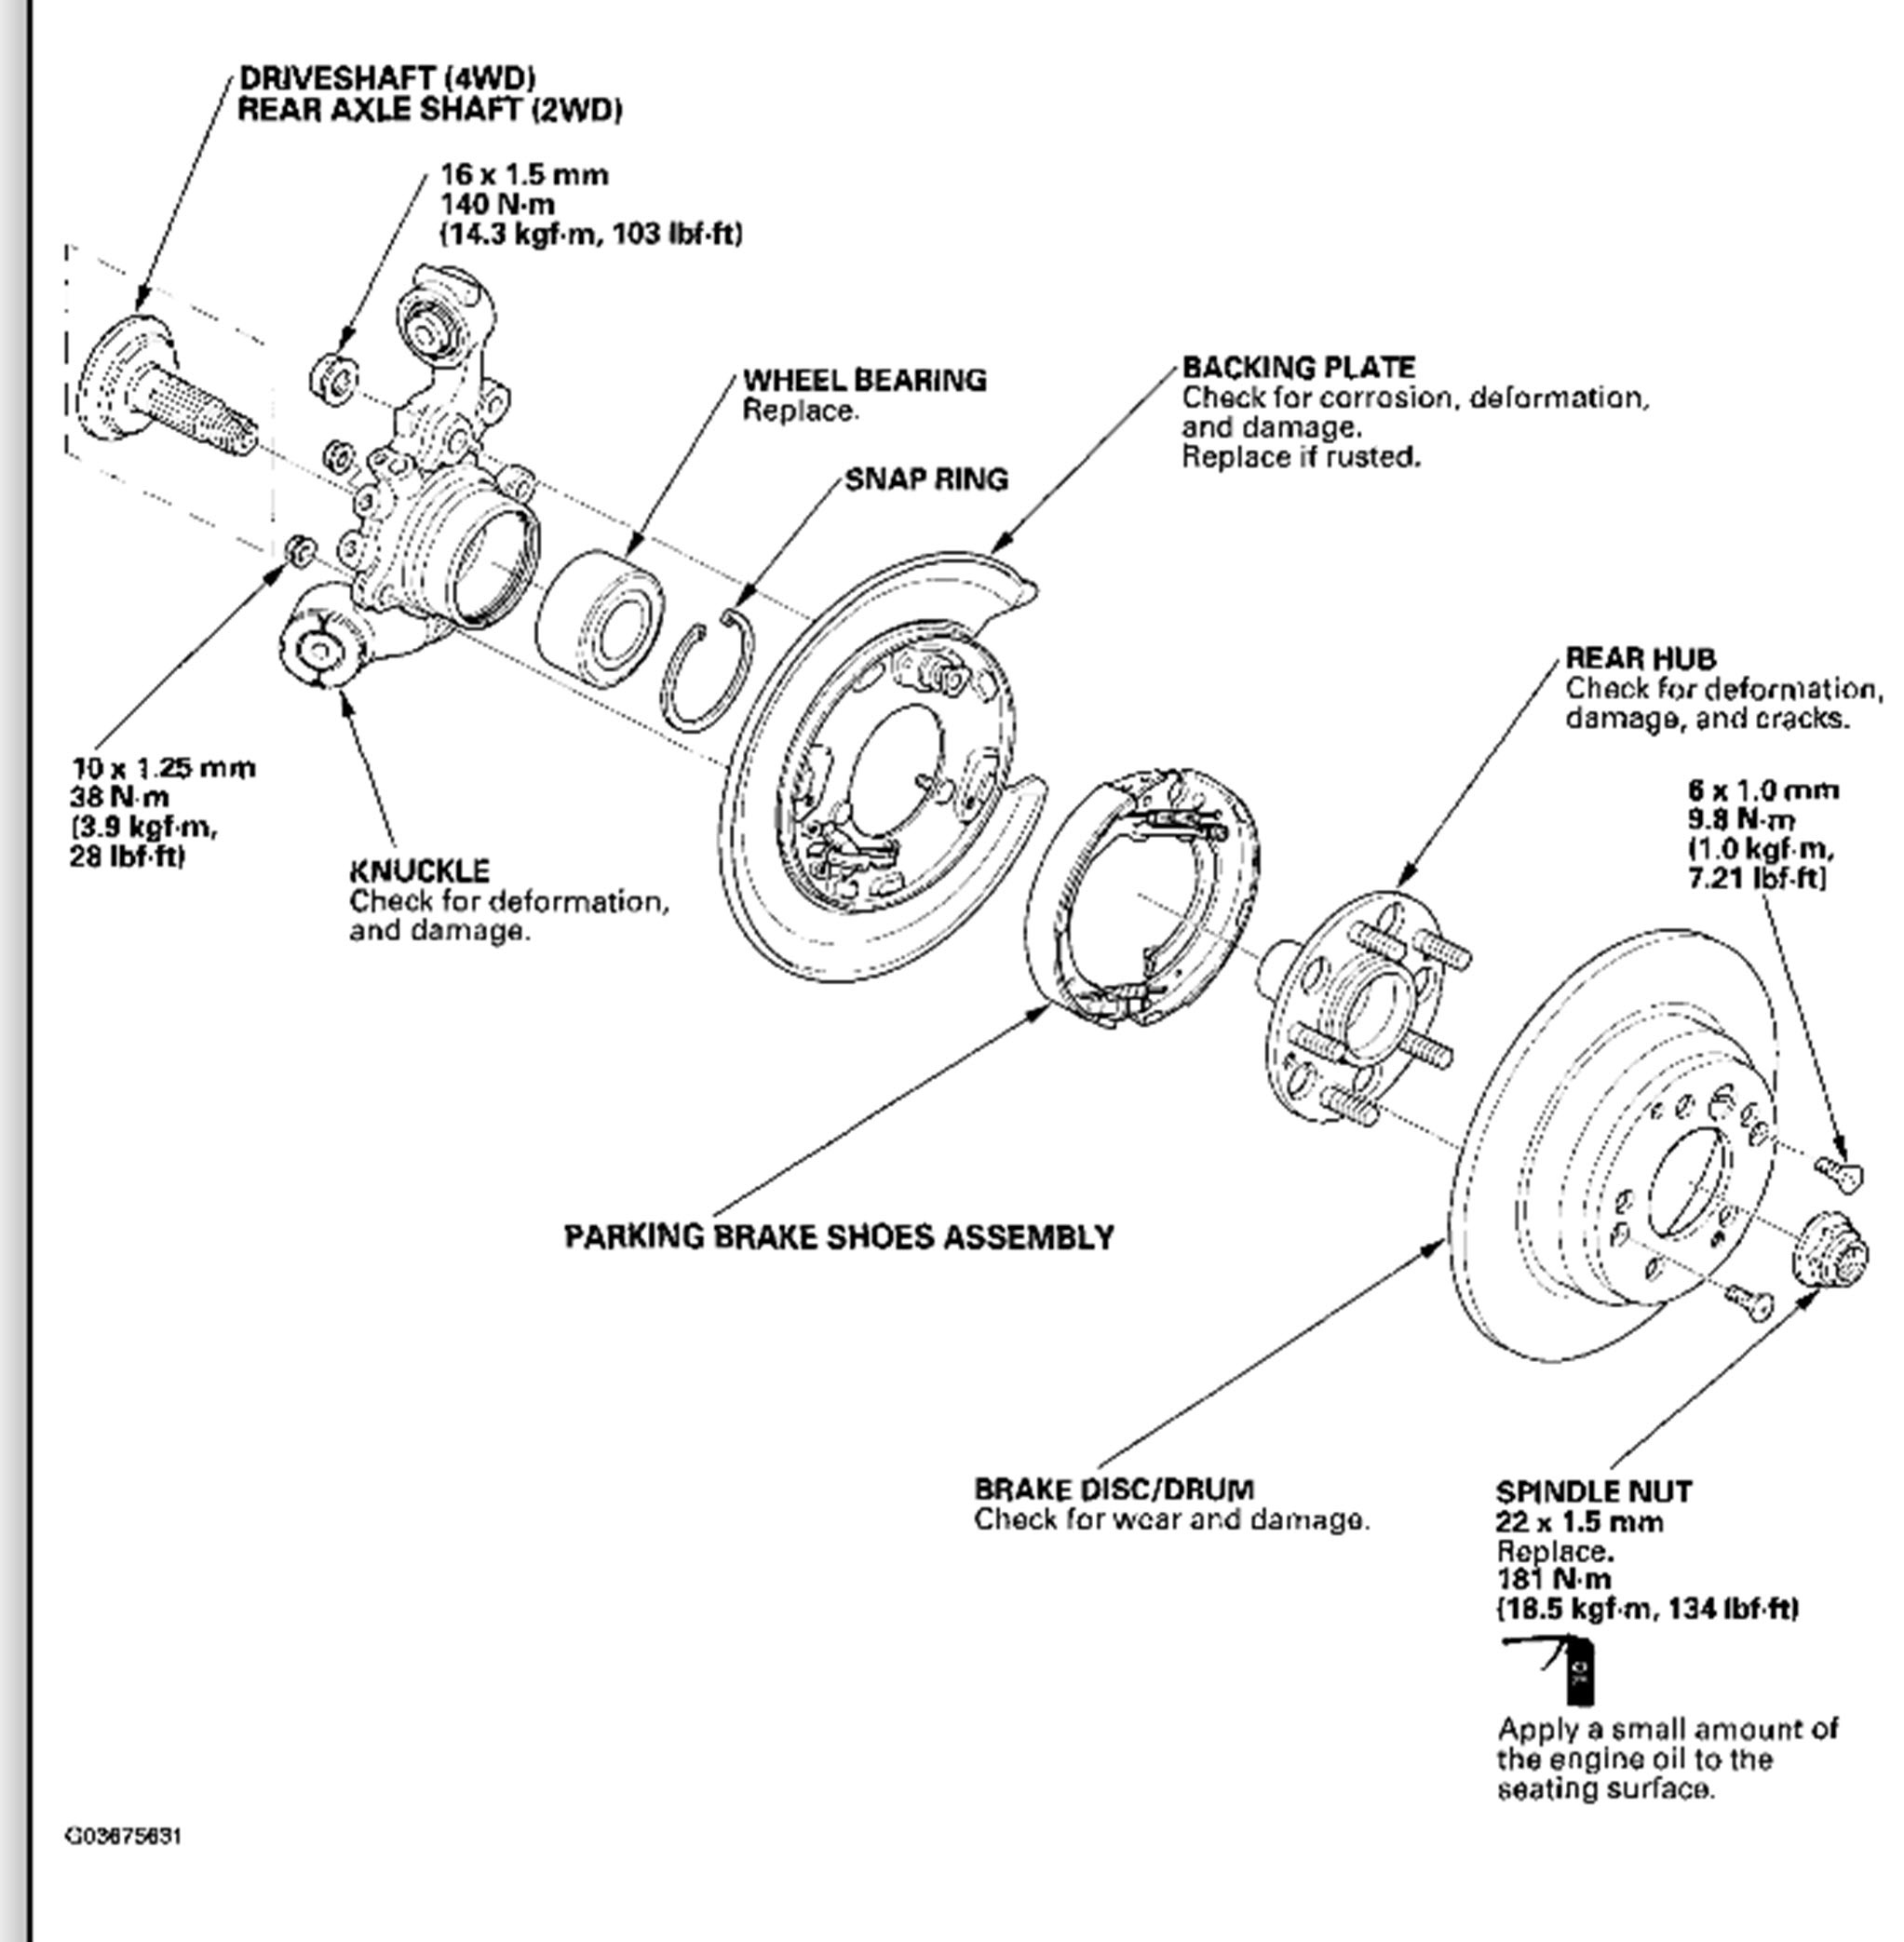 Toyota Tundra Wheel Bearing Diagram